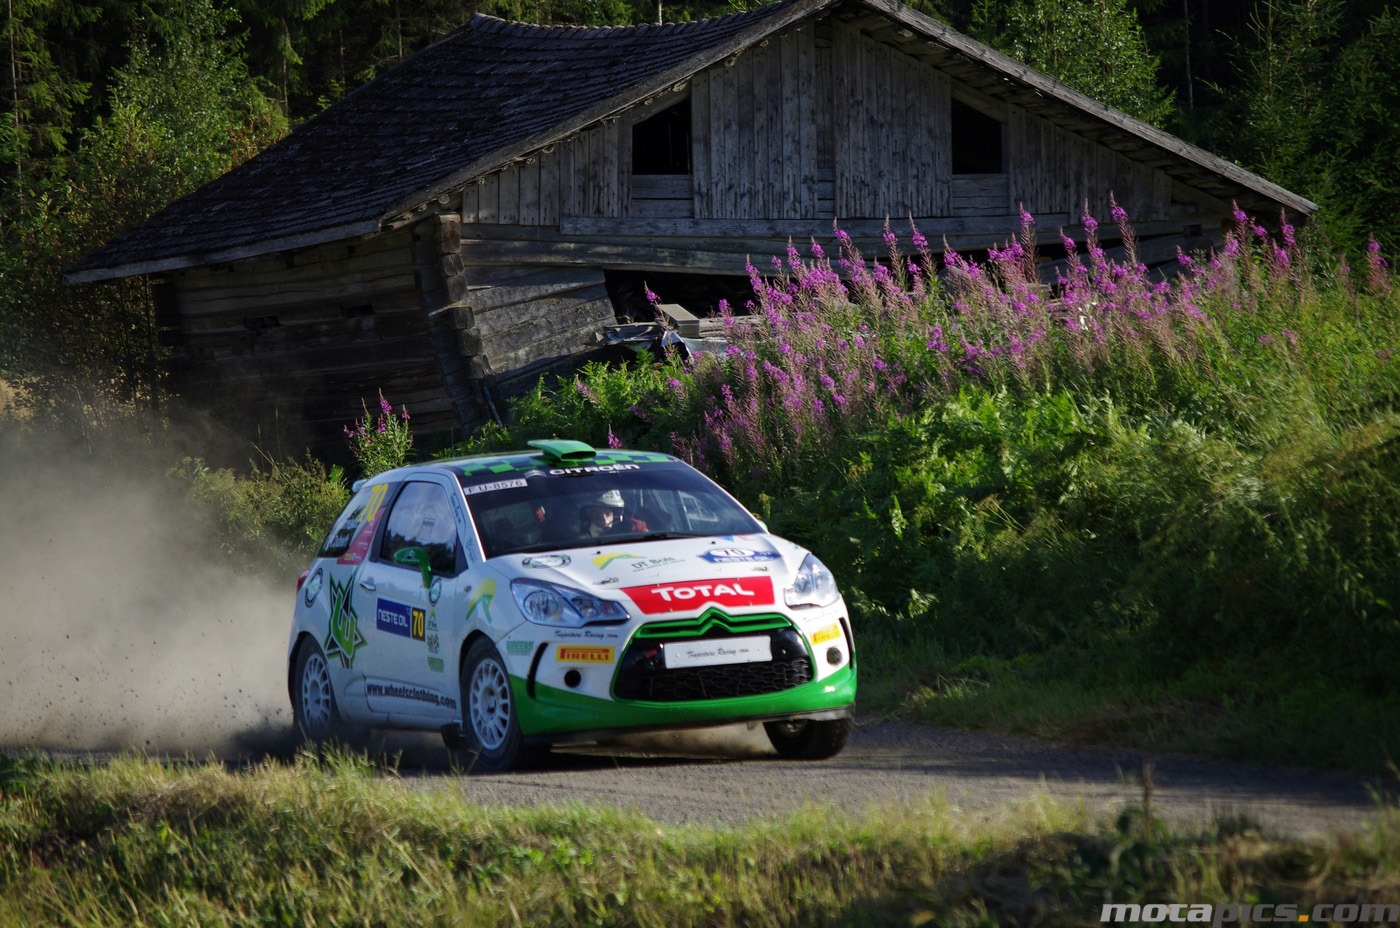 motapics-wallpaper-finland-rally2_1400px.jpg